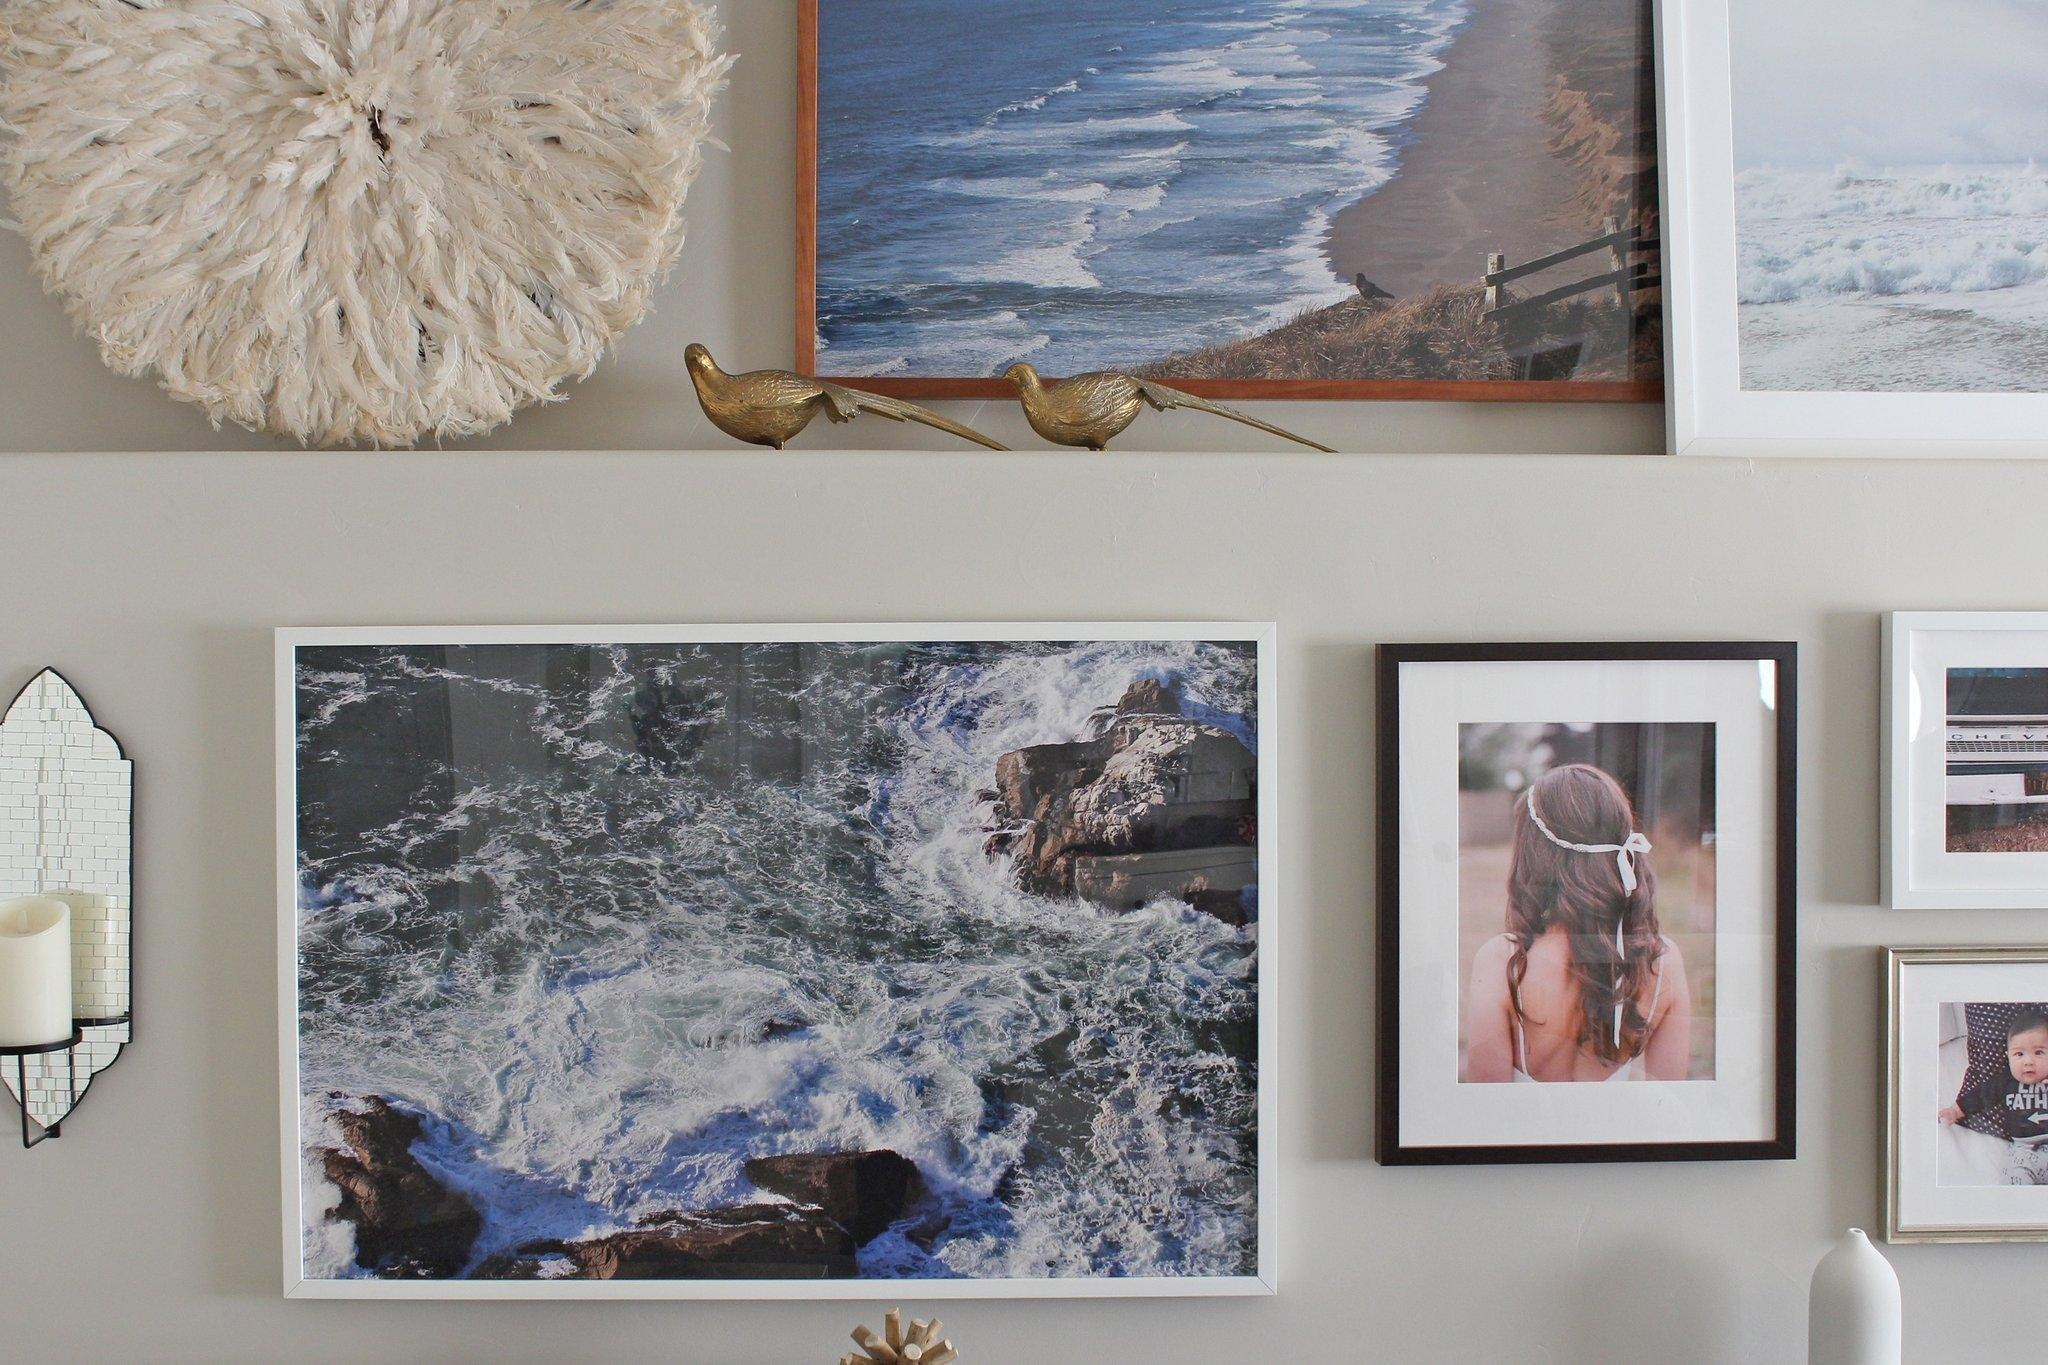 How To Turn Your Photos Into Art | Popsugar Home Inside Turn Pictures Into Wall Art (Image 9 of 20)